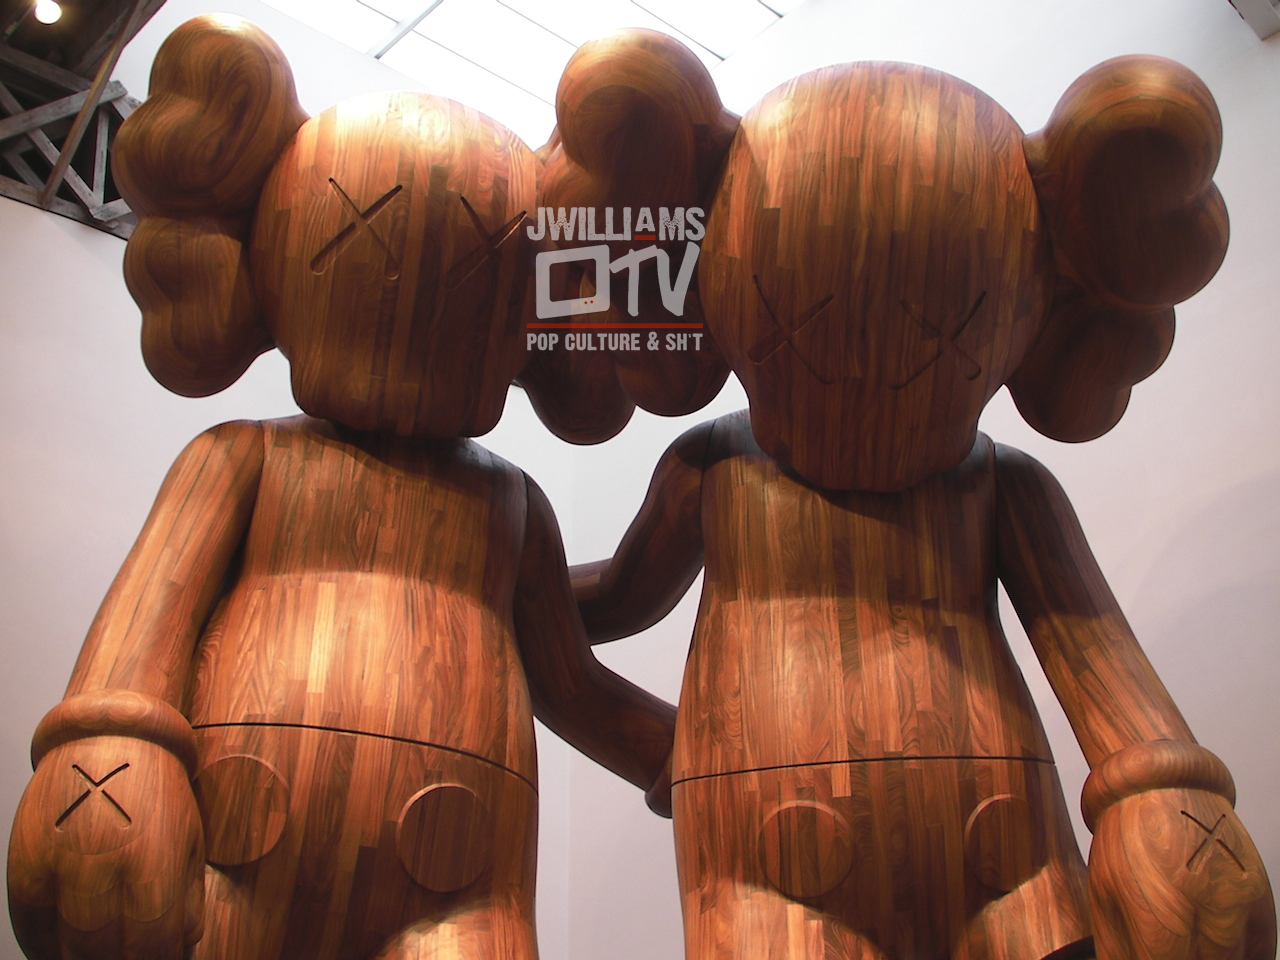 """Kaws' """"ALONG THE WAY"""" at Mary Boon Gallery in NYC"""